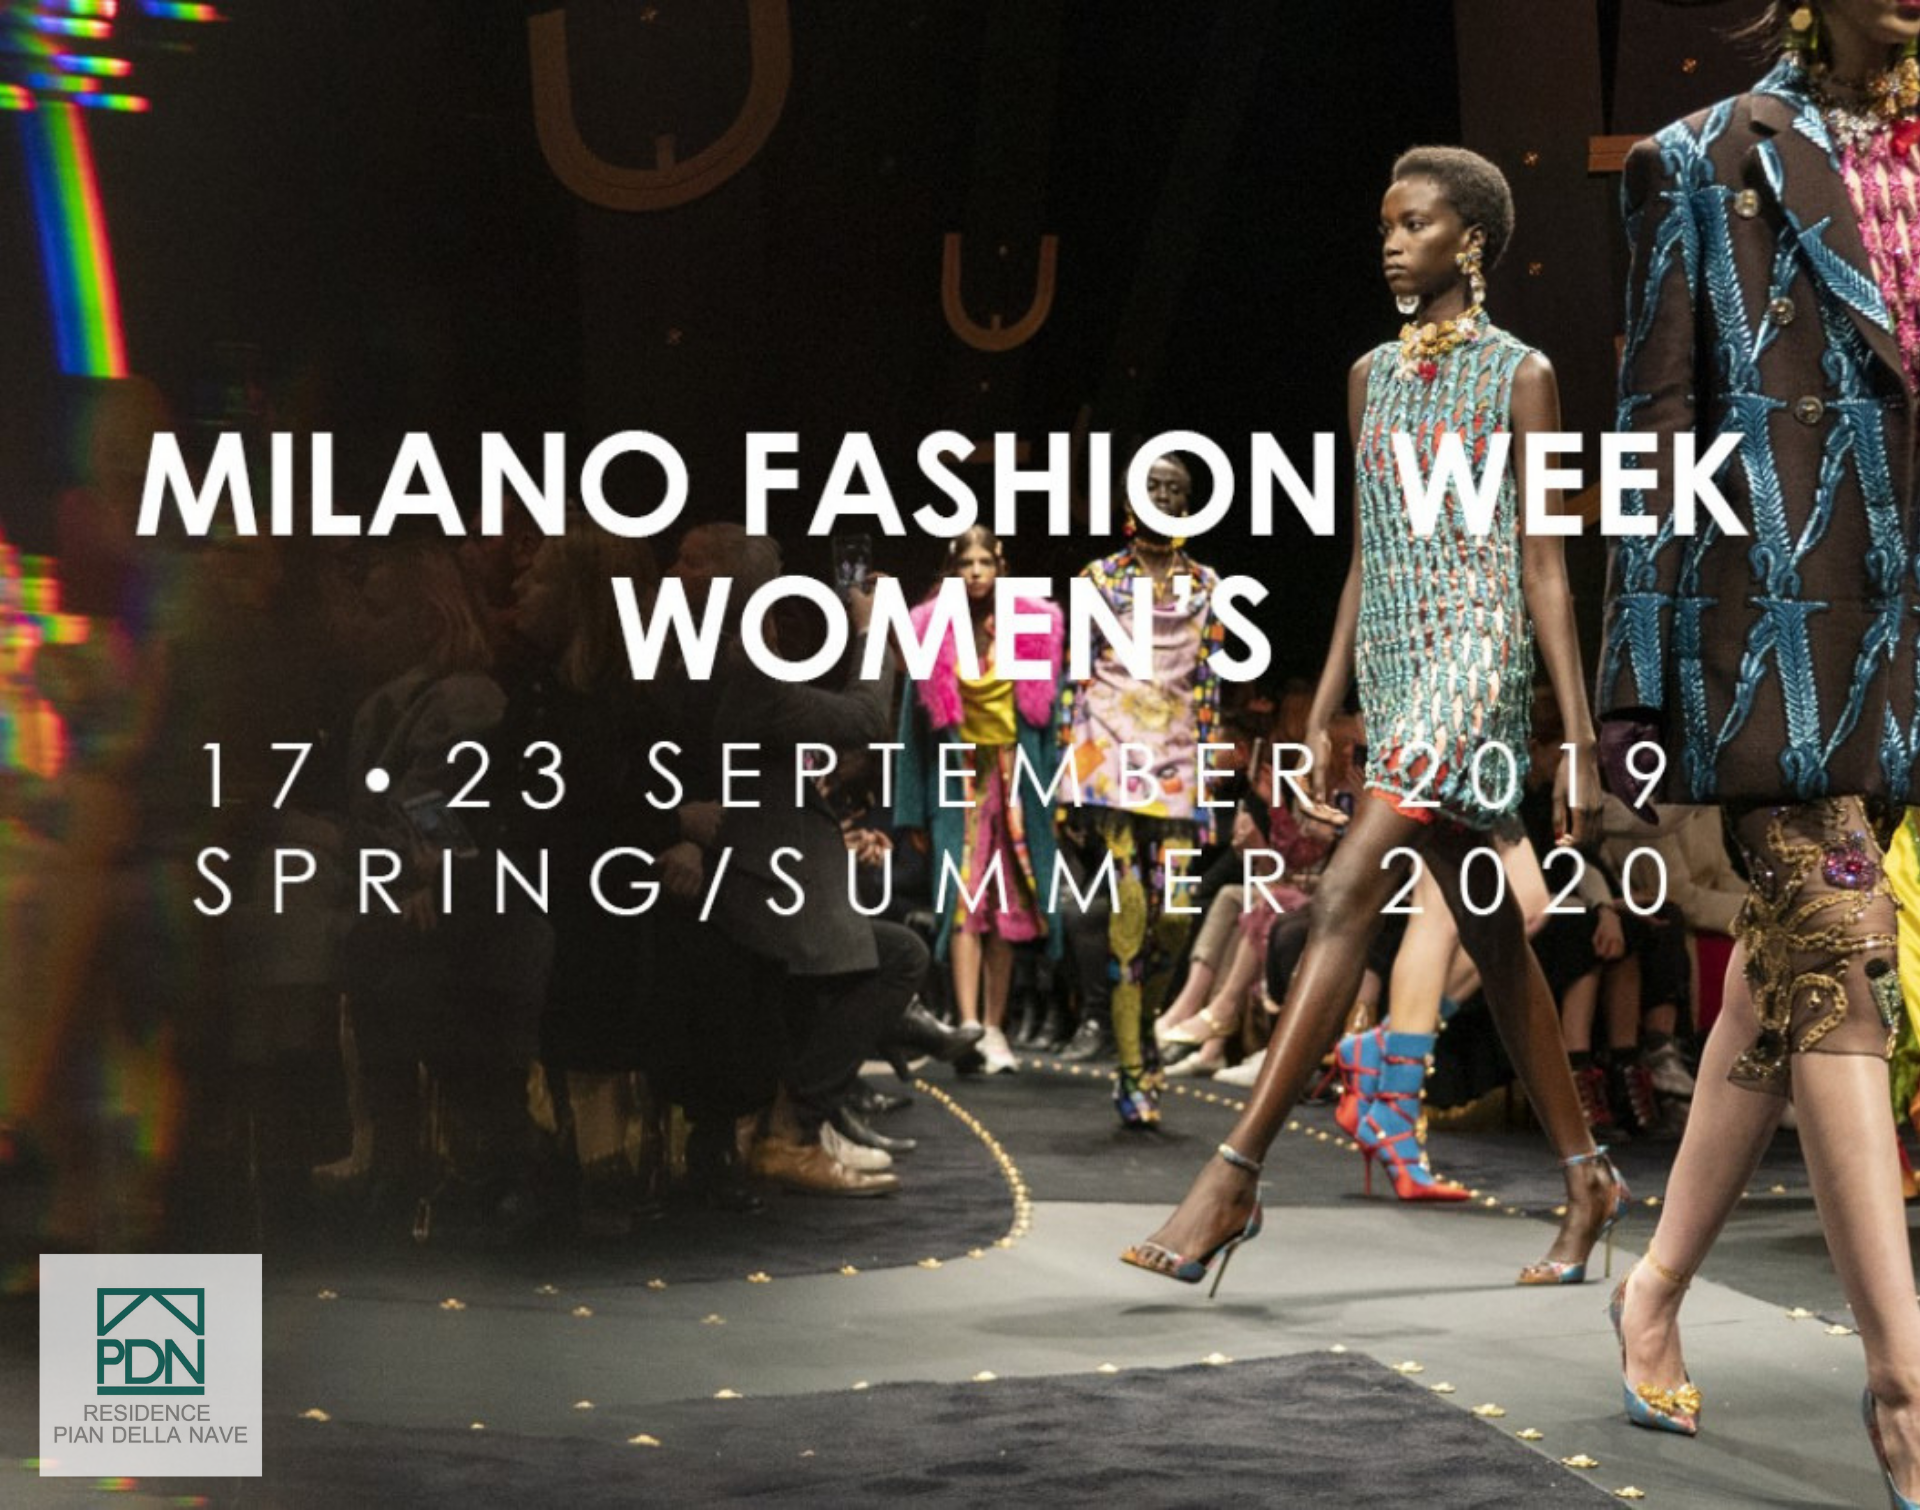 Milano Fashion Week 2019 - Crisafulli Eyewear